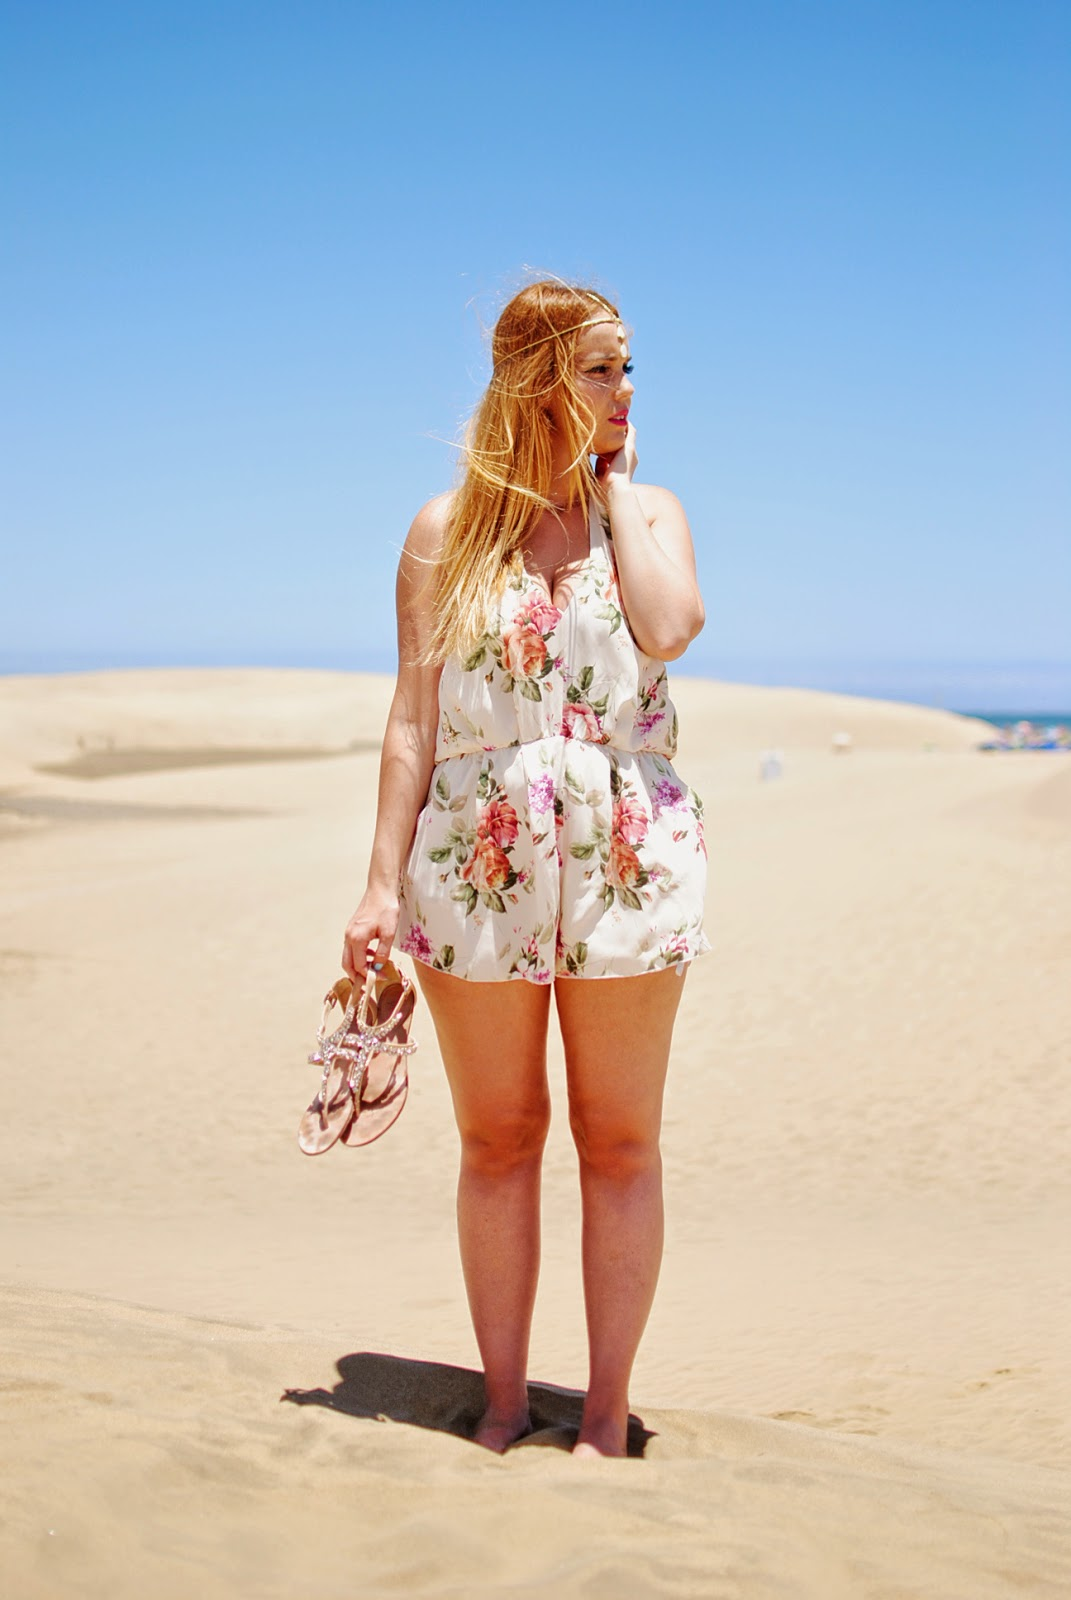 nery hdez, inlovewithfashion, playsuits, head band, jollychic, floral print